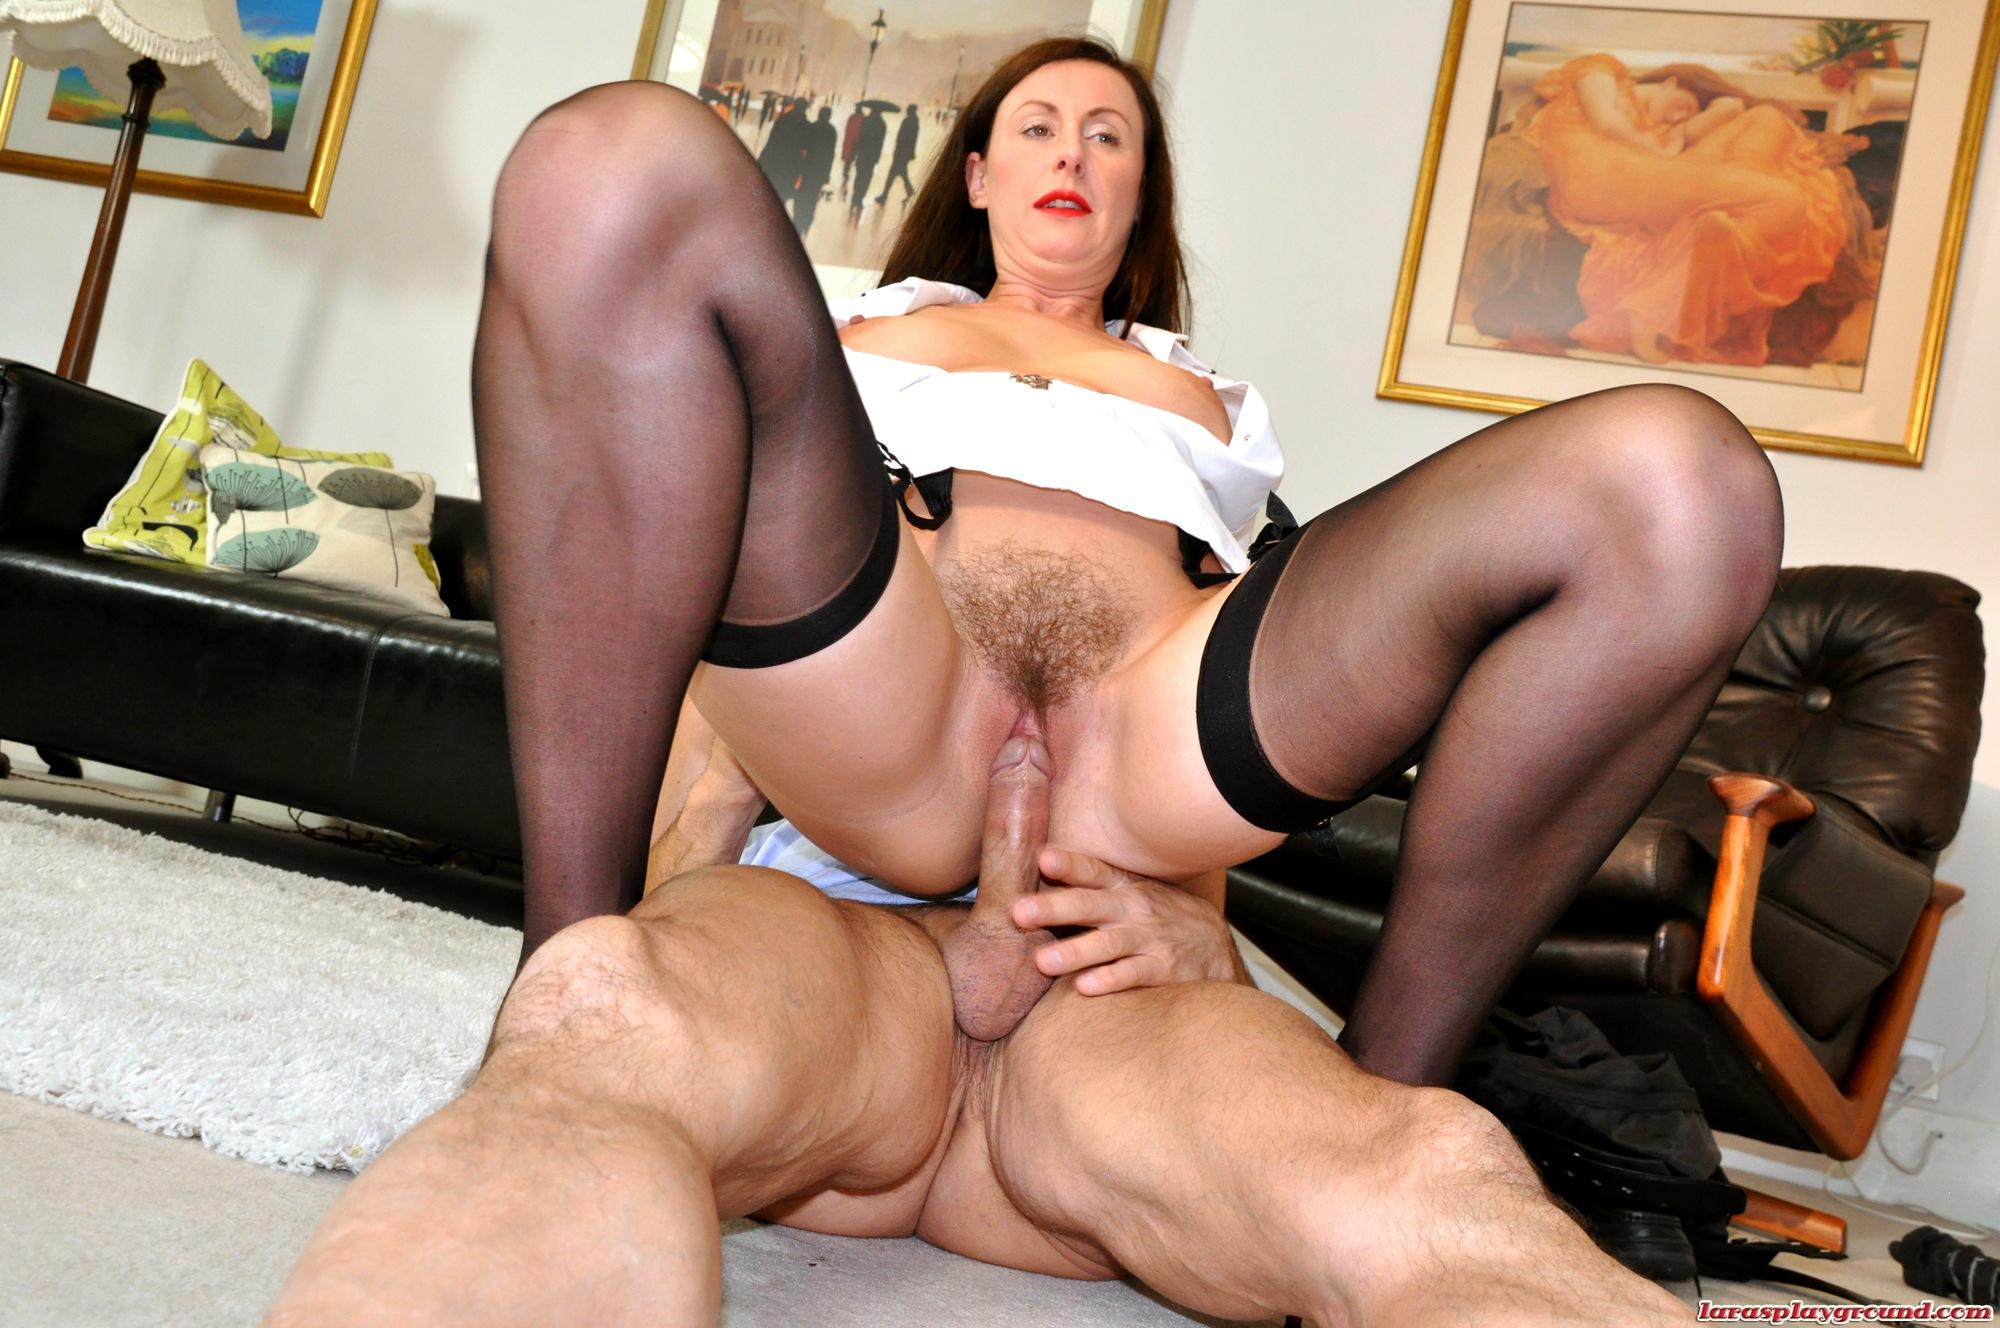 pussy-free-fuck-free-video-free-mature-porn-pink